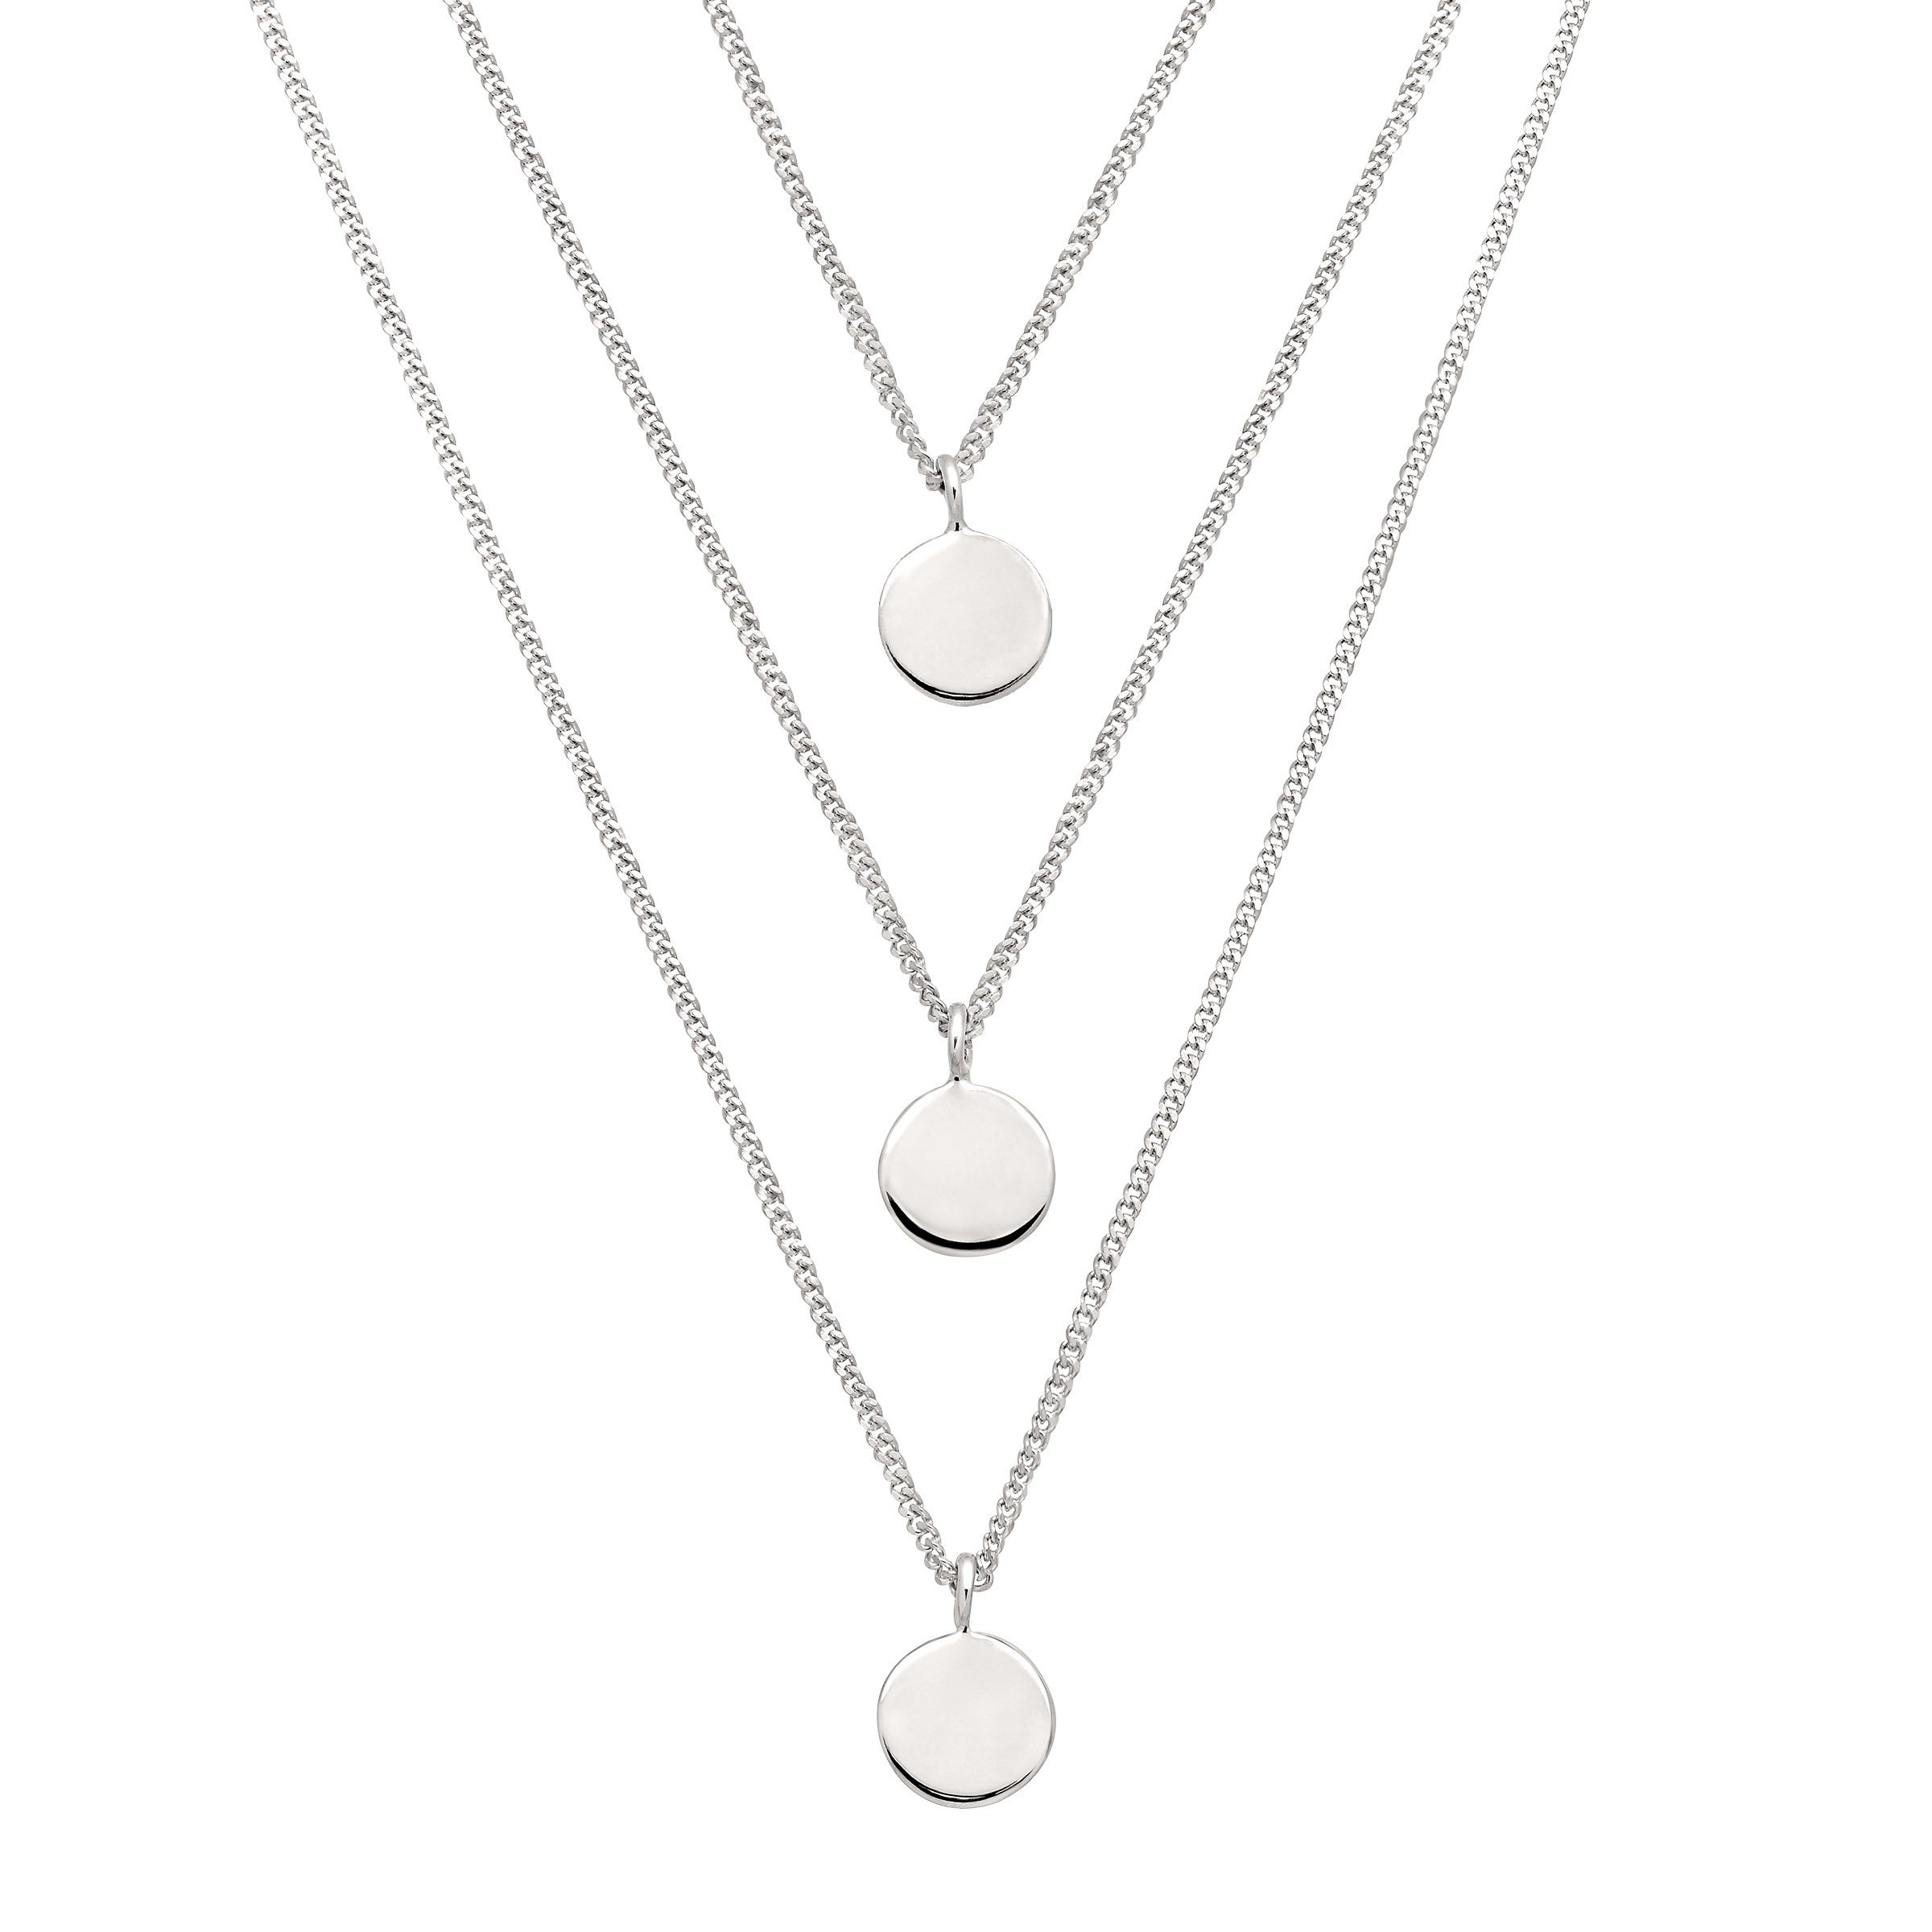 Silpada 'Descending Disc' Layered Necklace in Sterling Silver